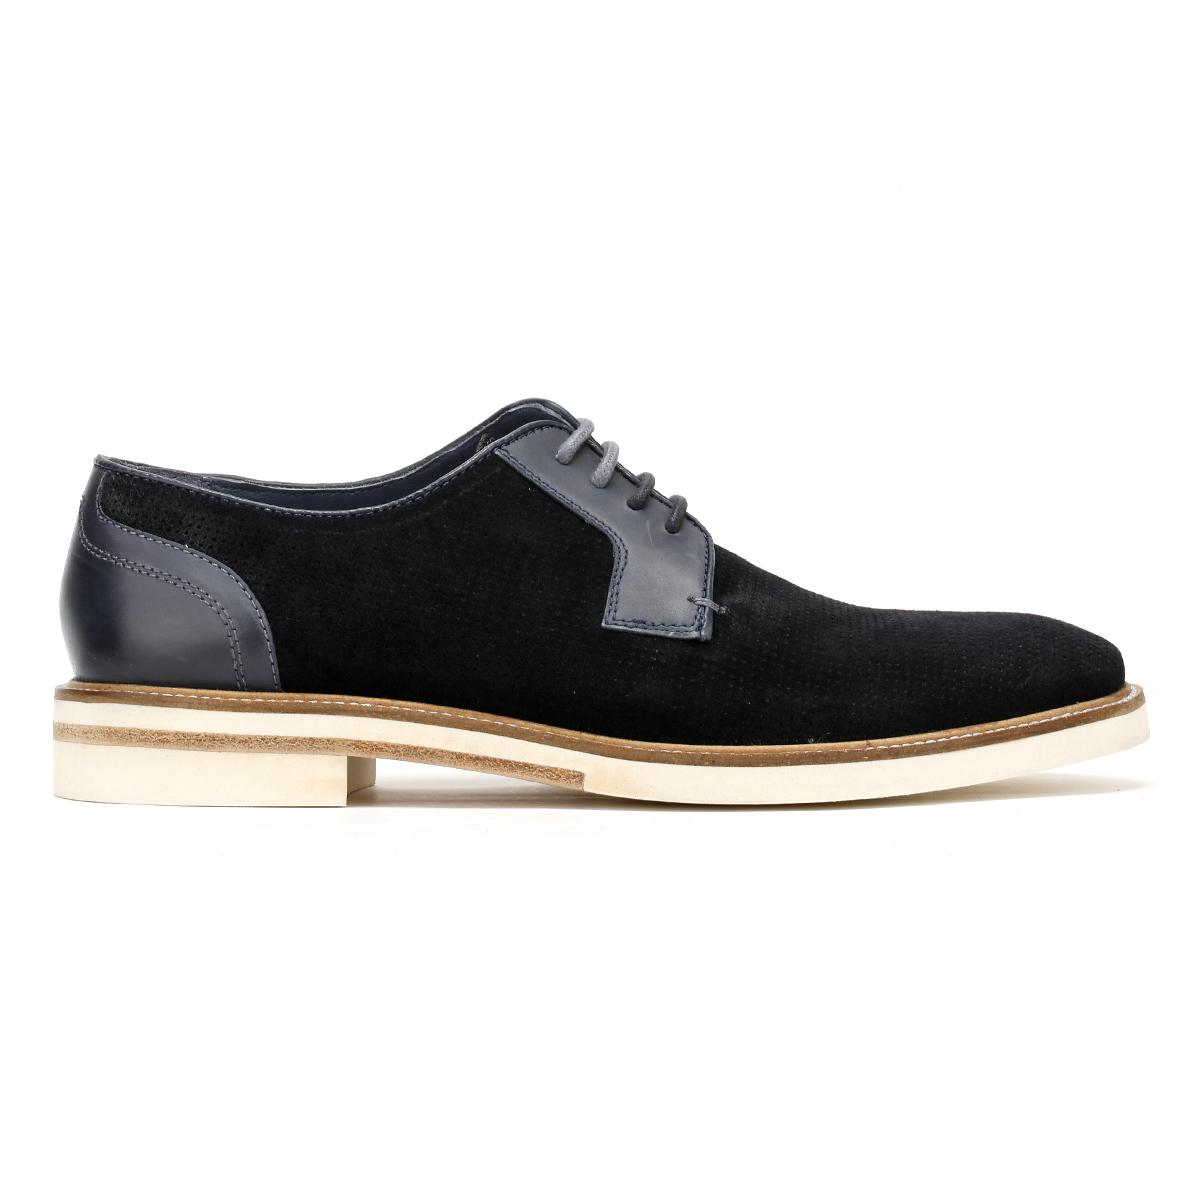 a2aa4113e02879 Lyst - Ted Baker Mens Dark Blue Siablo Perforated Suede Shoes in ...